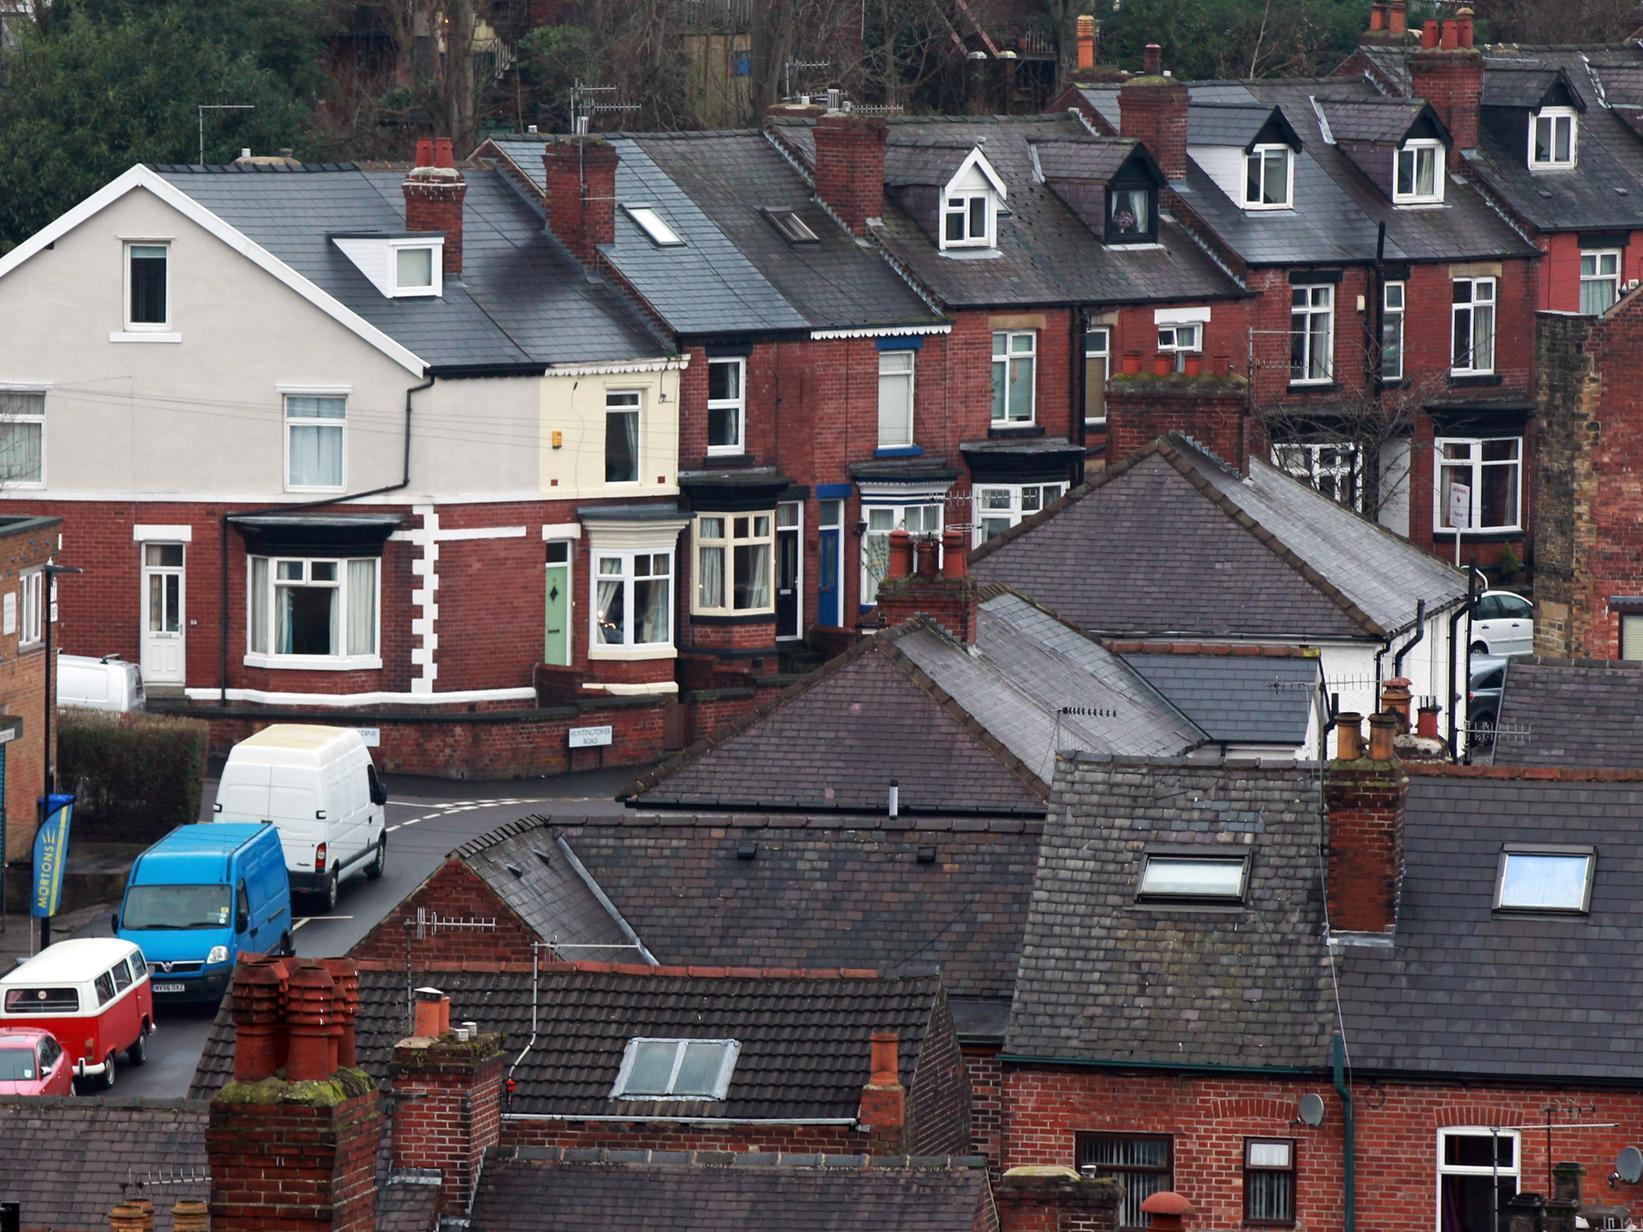 More than 580 bids for council property in Beeston as ...